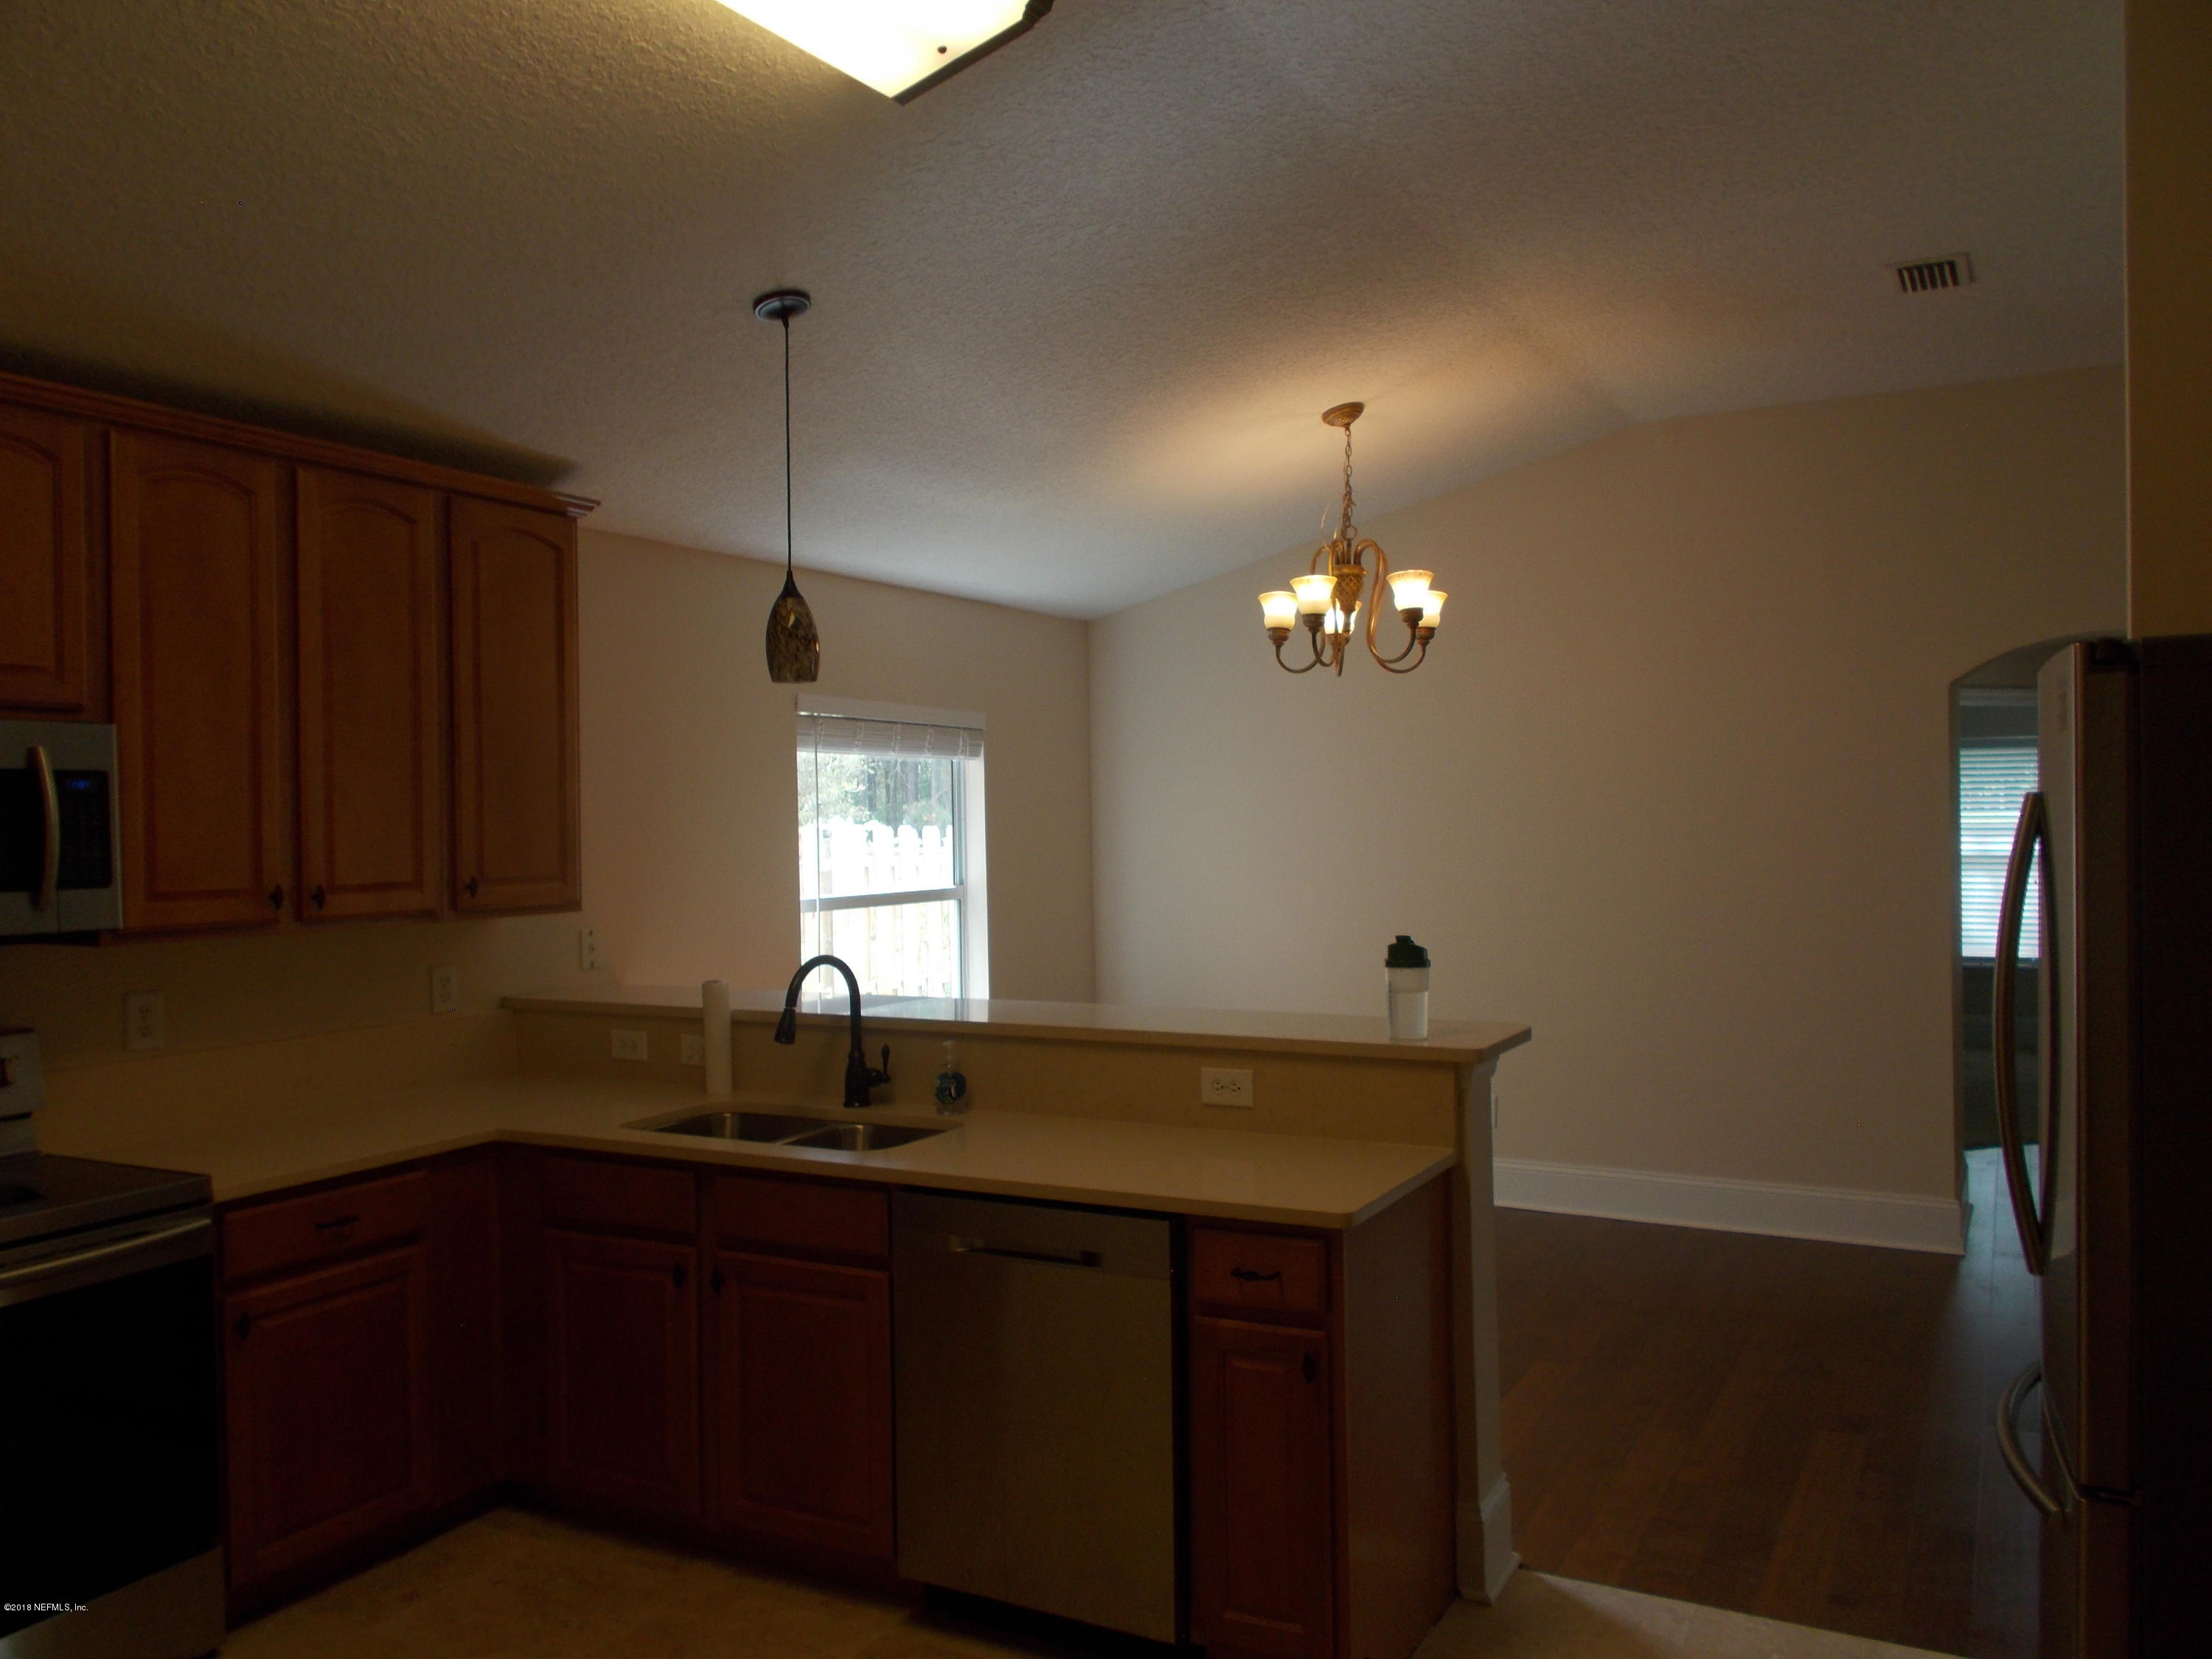 12410 TROPIC, JACKSONVILLE, FLORIDA 32225, 4 Bedrooms Bedrooms, ,3 BathroomsBathrooms,Residential - single family,For sale,TROPIC,961944